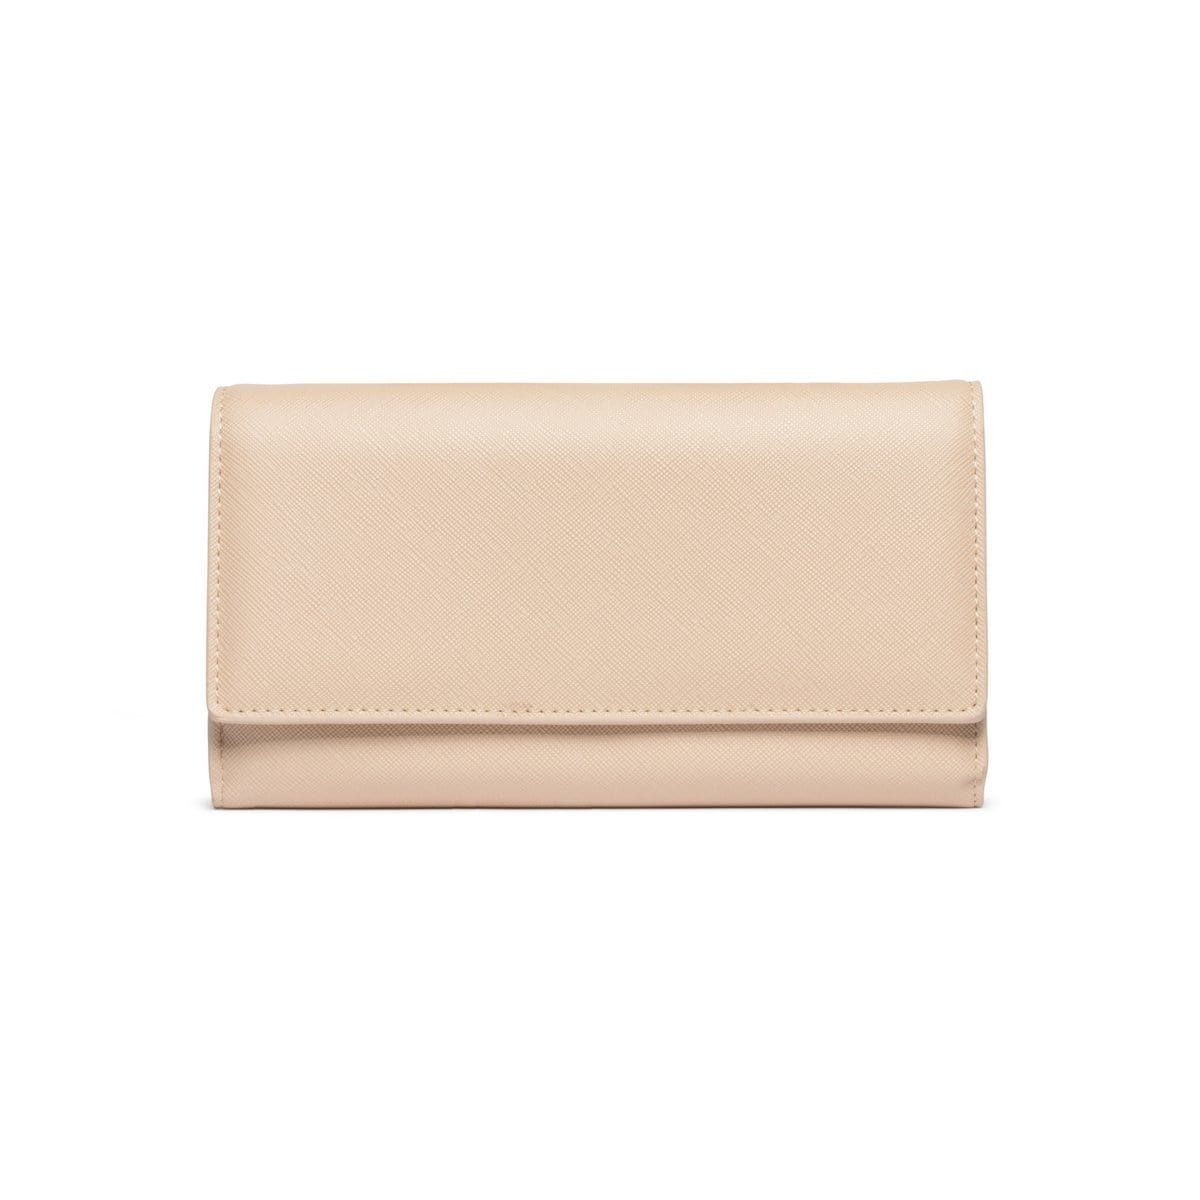 Sand Nude Bella Wallet (PERSONALISE ME!)